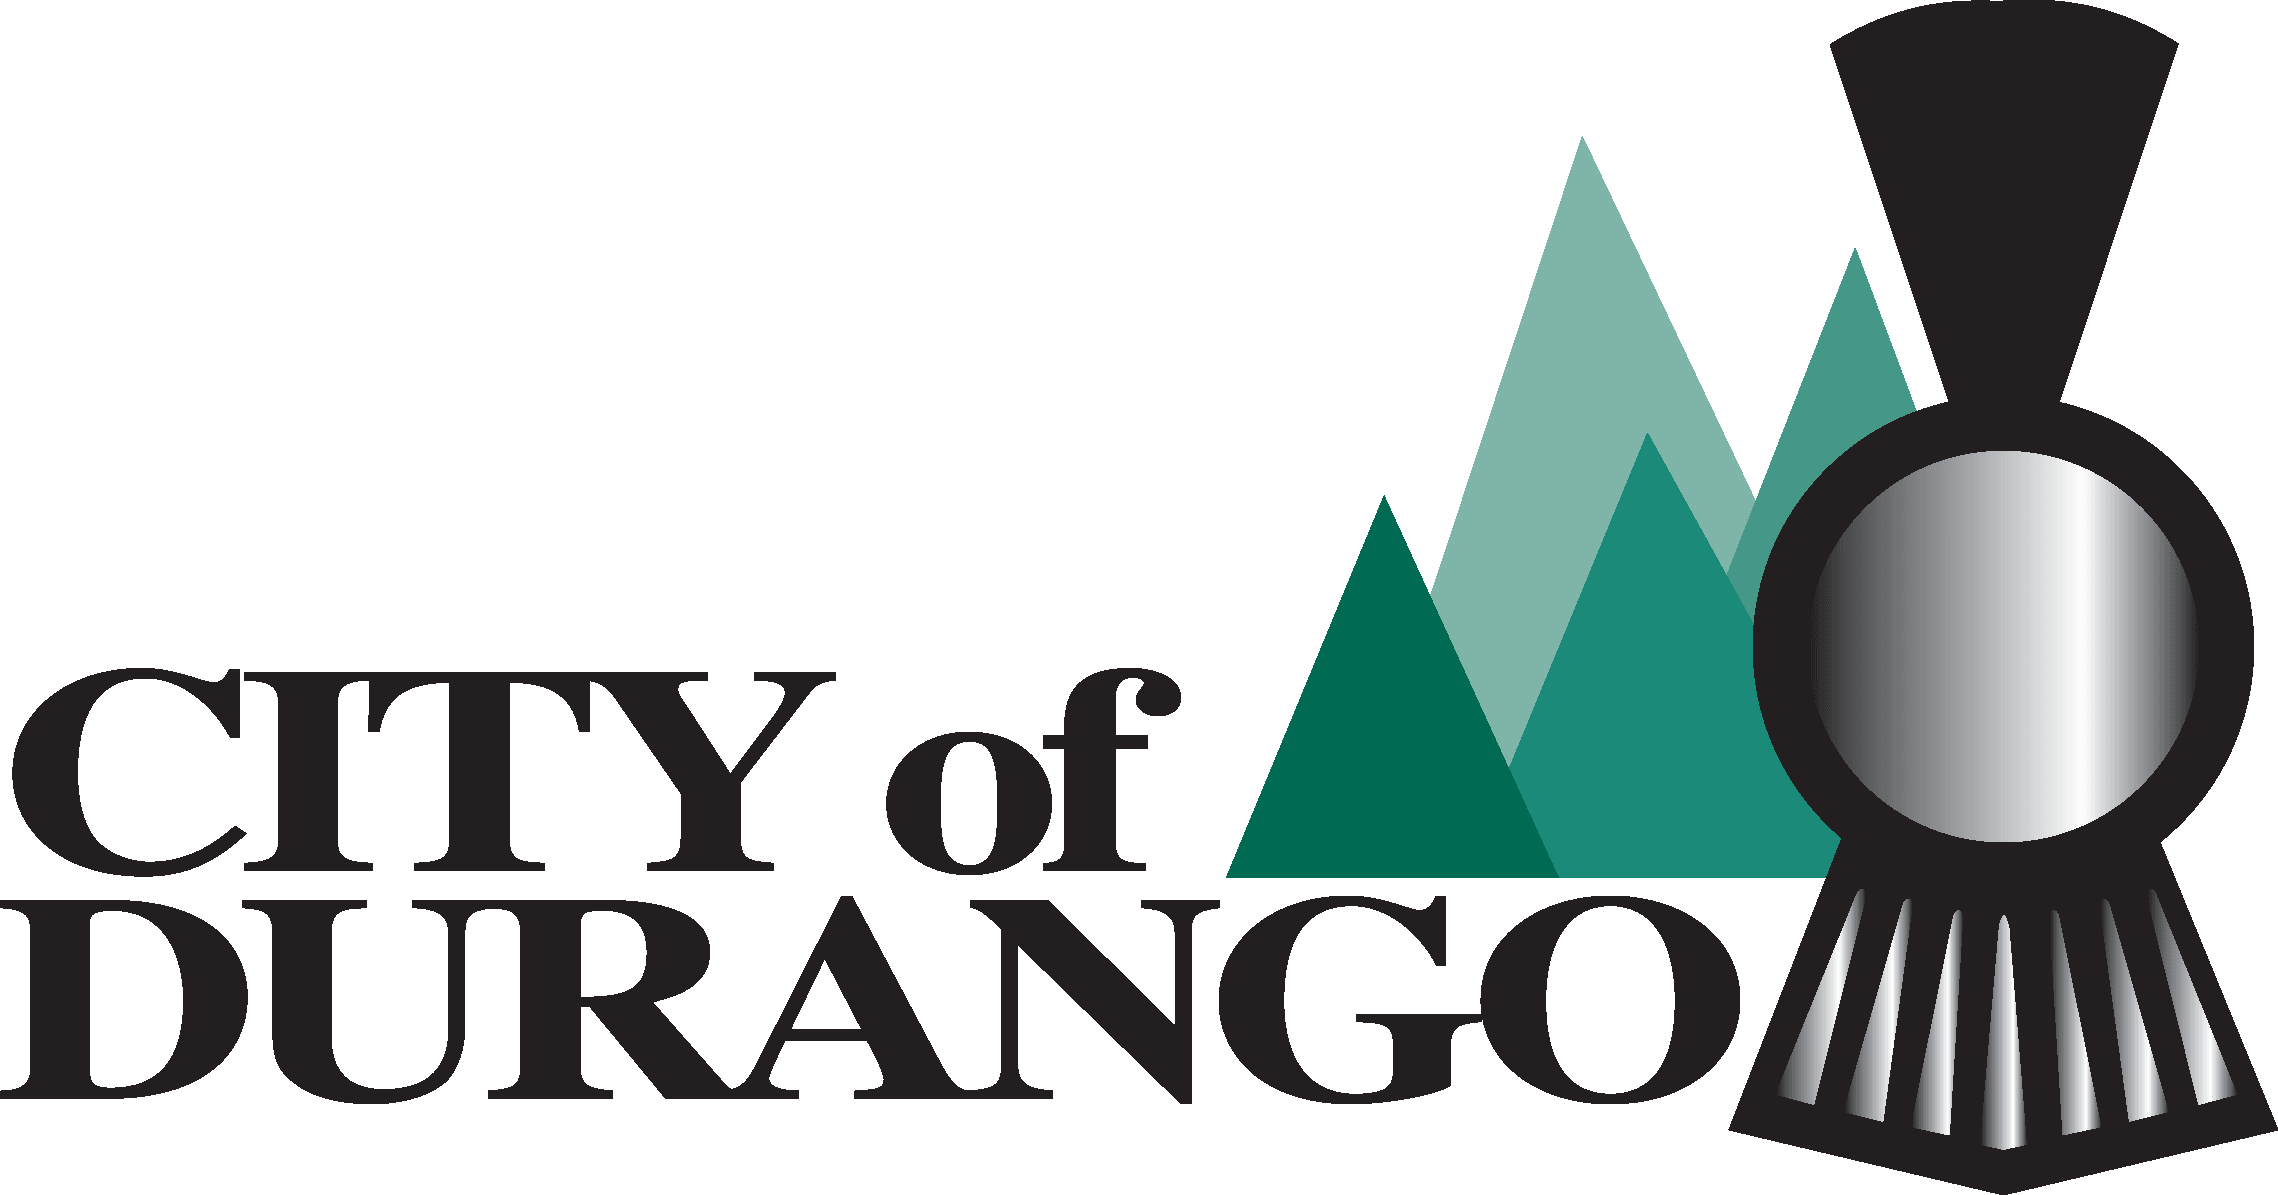 City of Durango logo